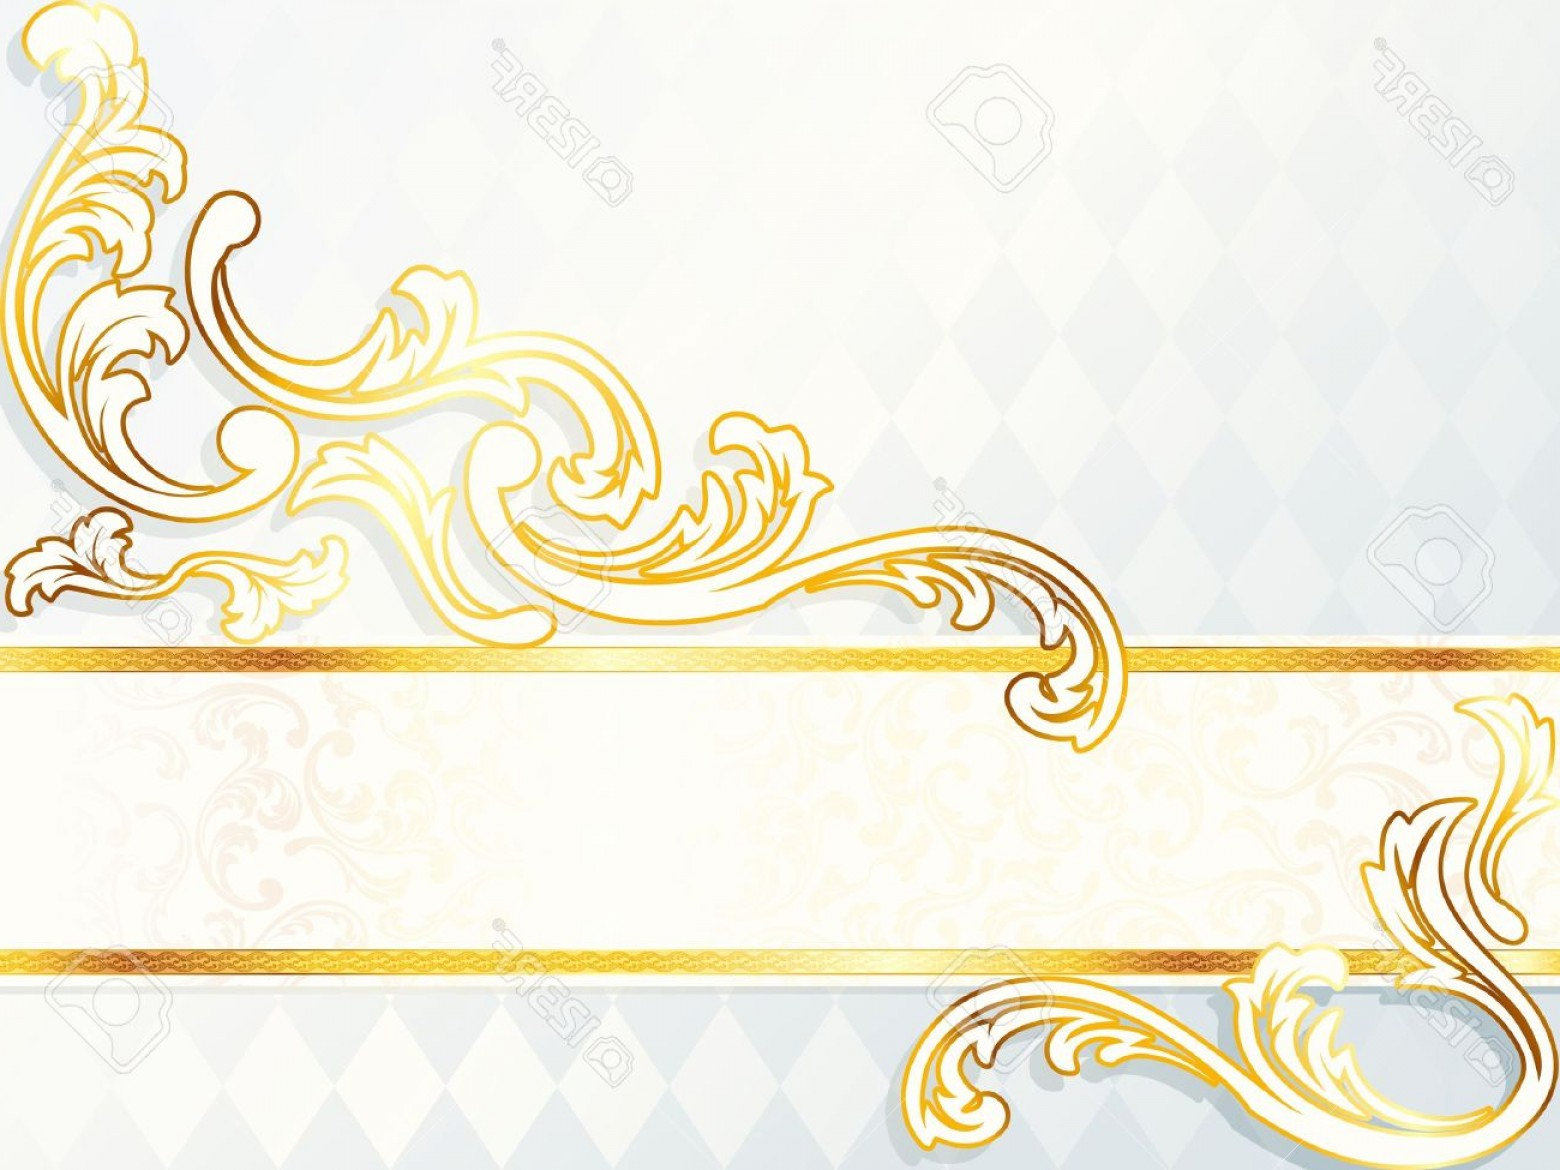 Elegant Wedding Vector Graphics: Photoelegant Horizontal White And Gold Wedding Banner Graphics Are Grouped And In Several Layers For Easy